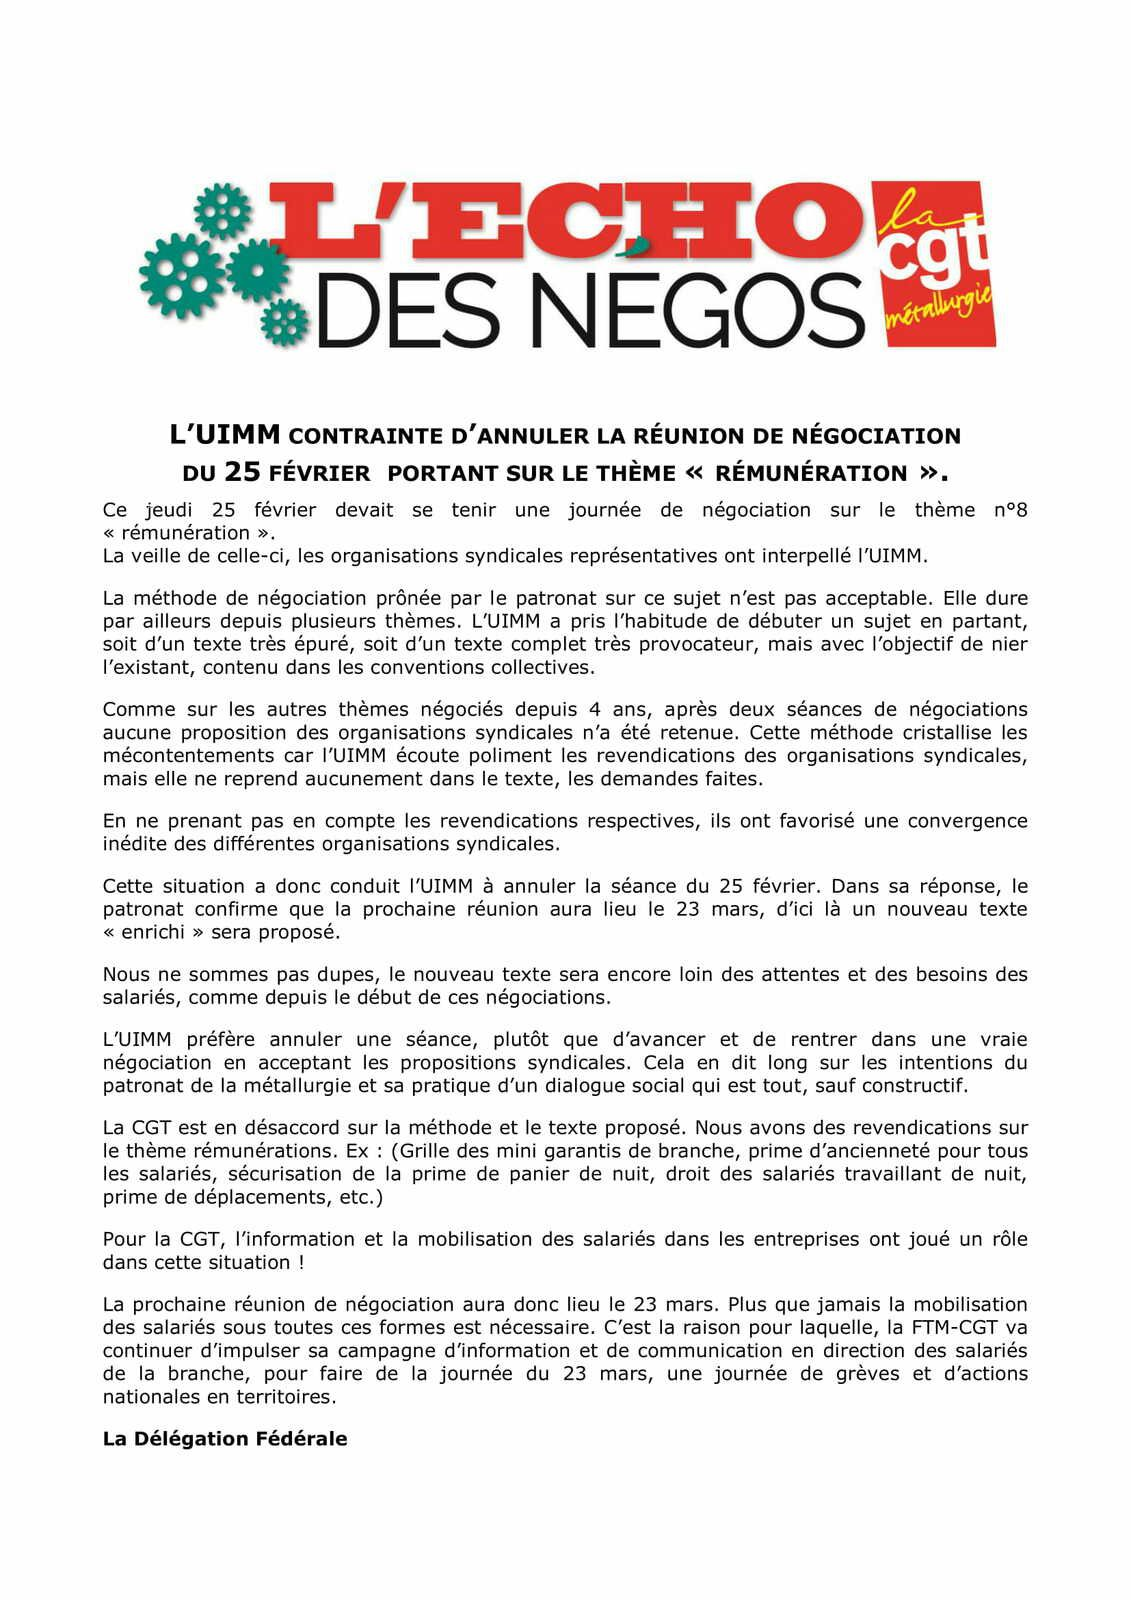 Echos des négos de la Convention Collective Nationale